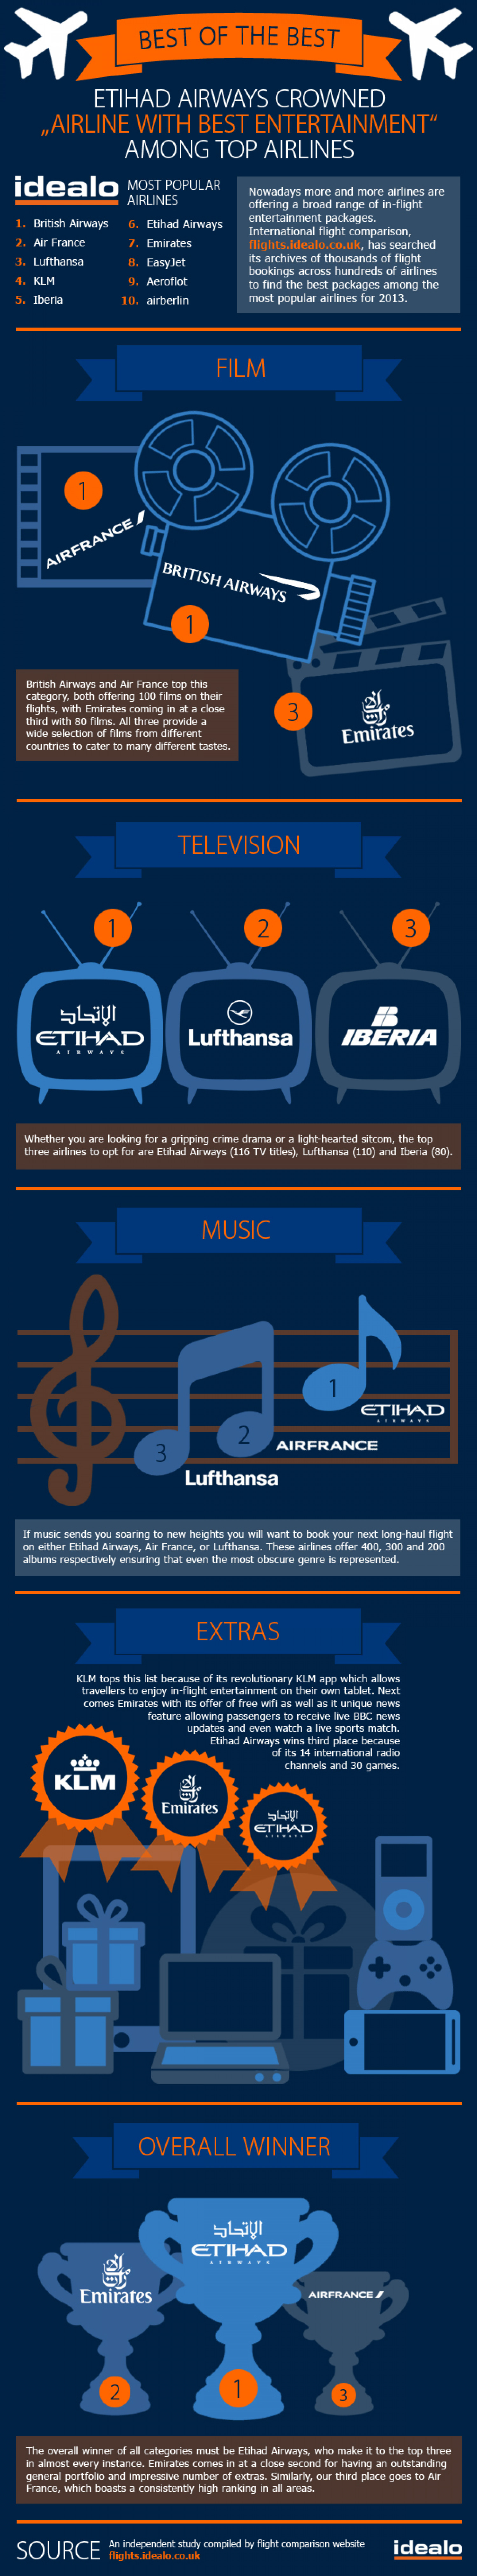 In-flight entertainment: the best of the best Infographic